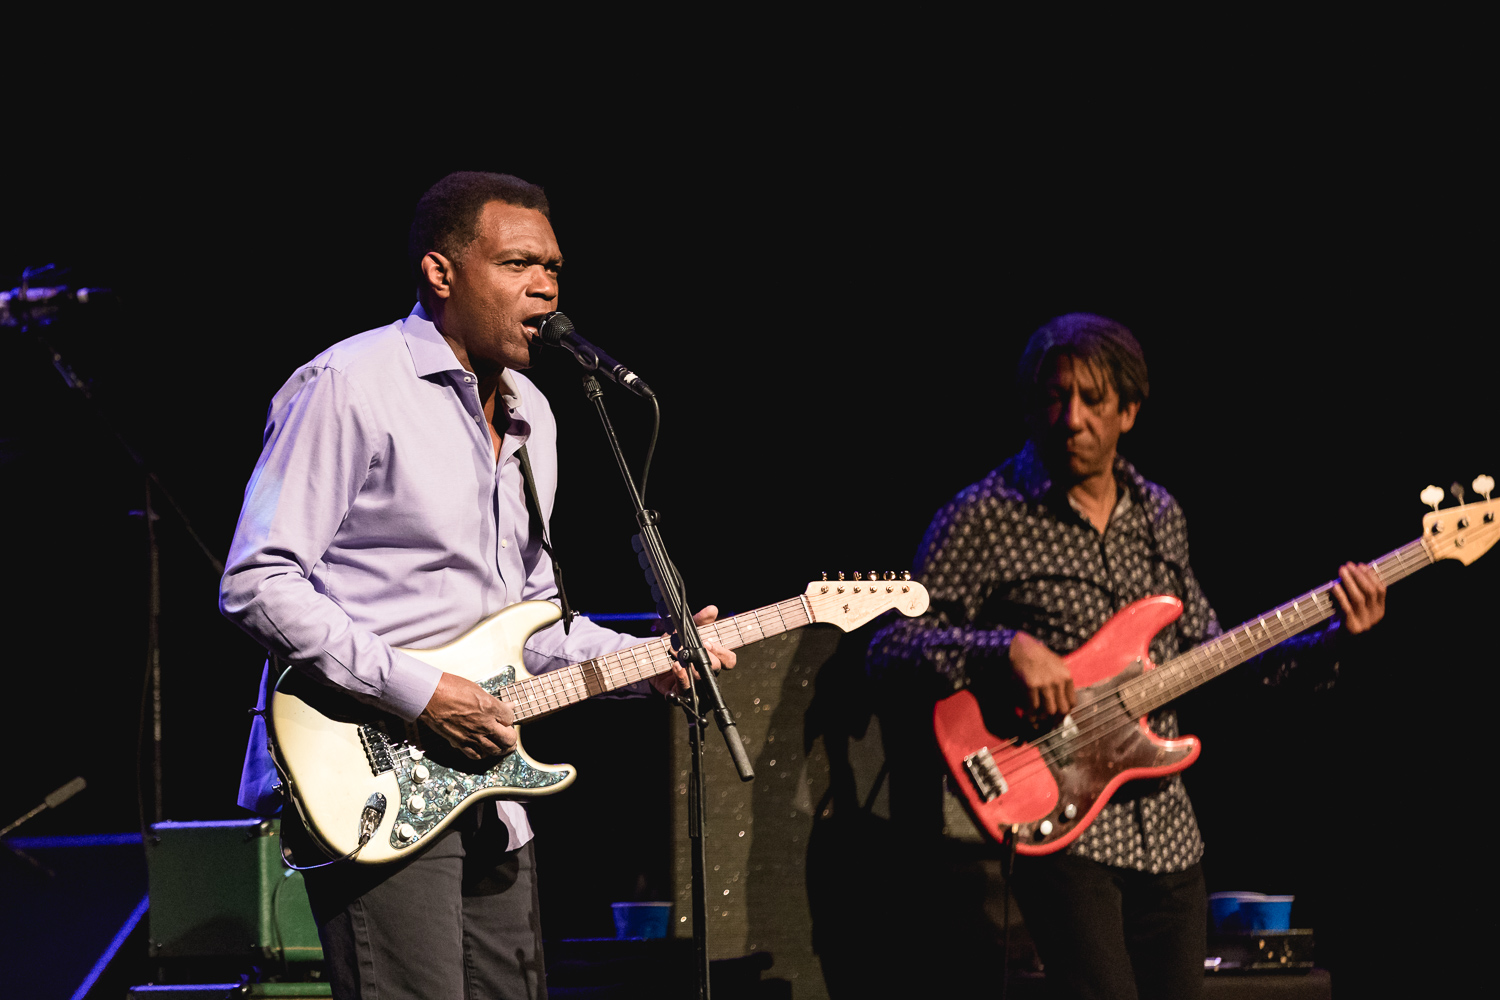 Robert Cray and his band playing onstage in Park City. Photo: @Lmsorenson.net